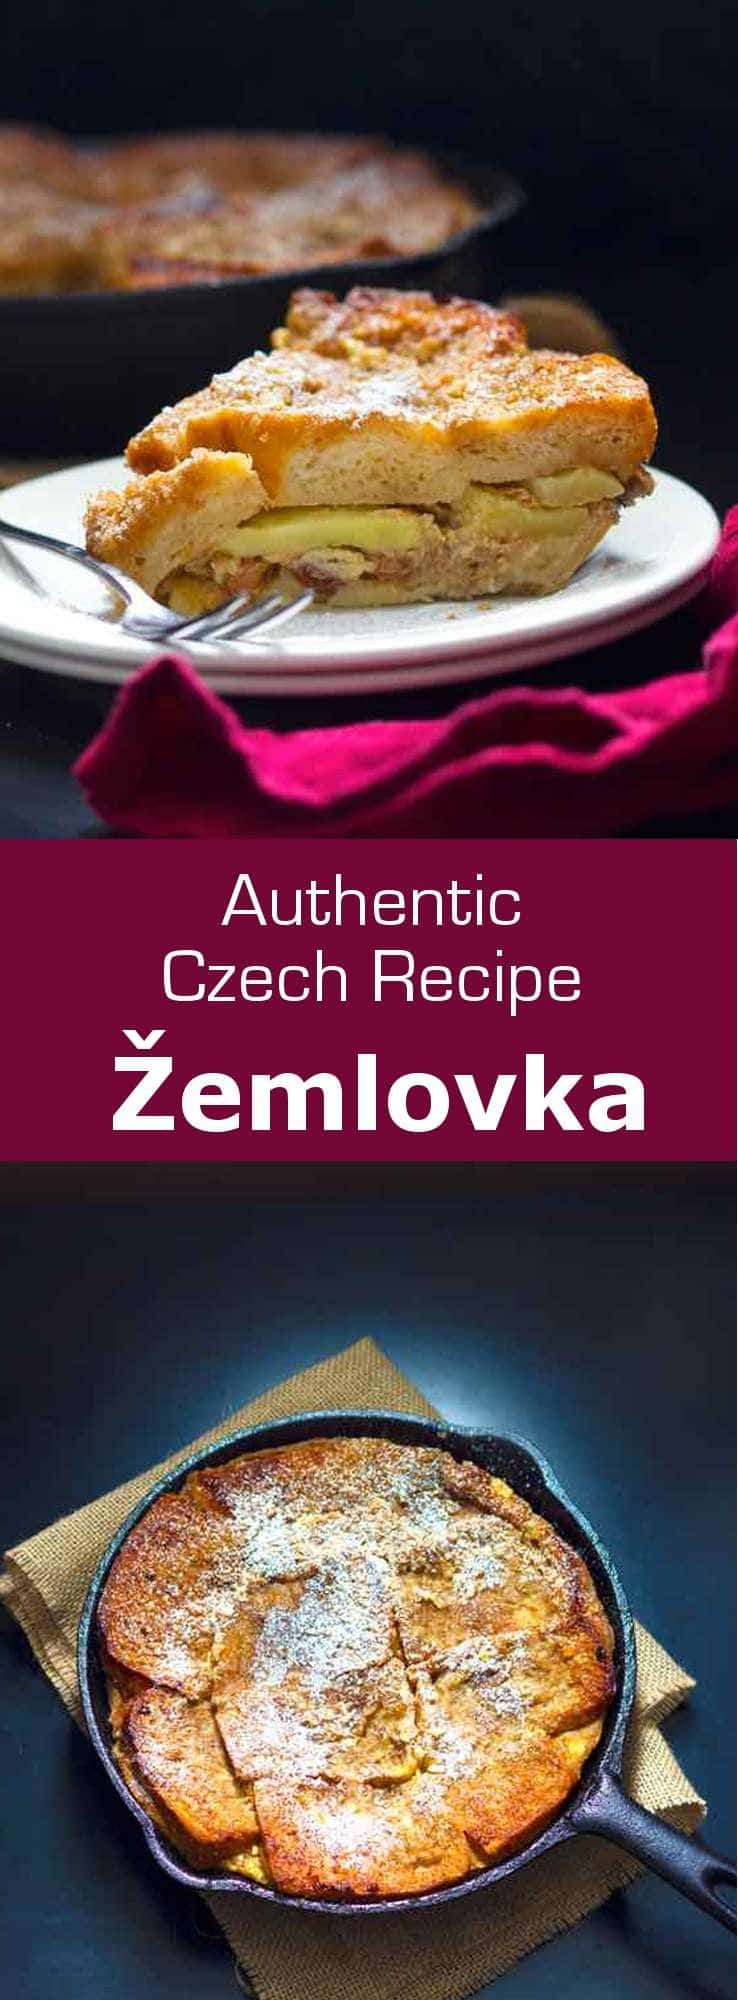 Žemlovka (aka zemlbába) is a deliciously sweet and fruity, mildly-spiced custard and bread-based dish from the Czech Republic #CzechRepublic #CzechCuisine #CzechRecipe #Dessert #CzechDessert #Vegetarian #WorldCuisine #196flavors